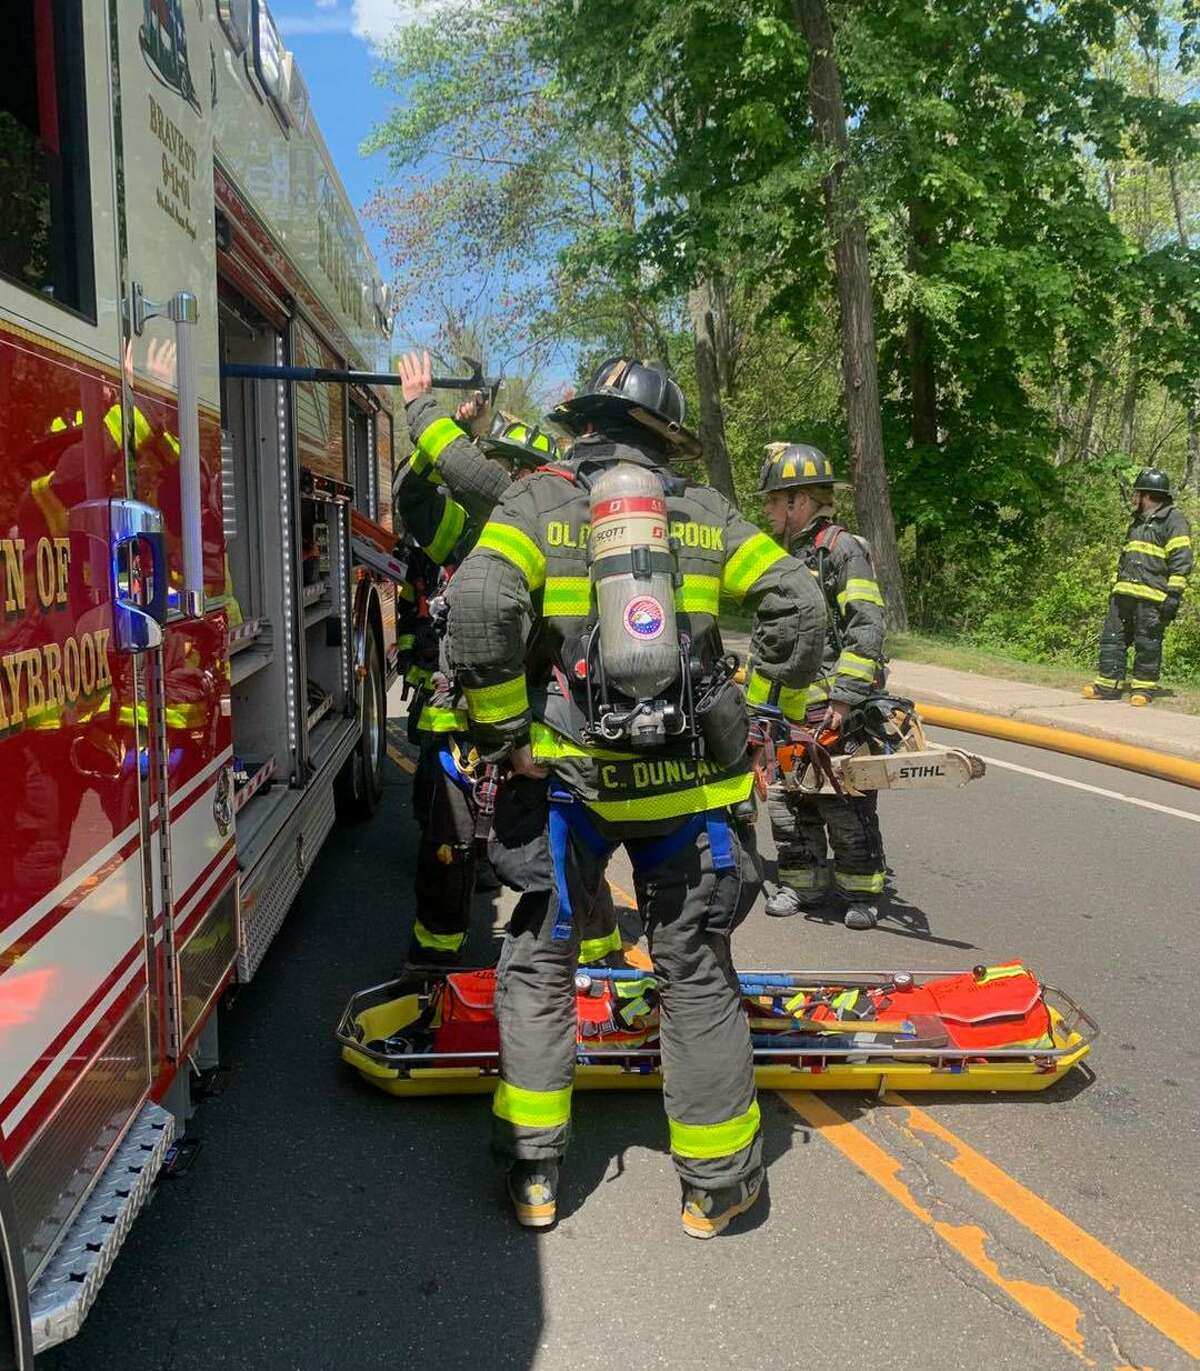 Old Saybrook Fire Department responded to a fire at an East Lyme business on Saturday, May 15.